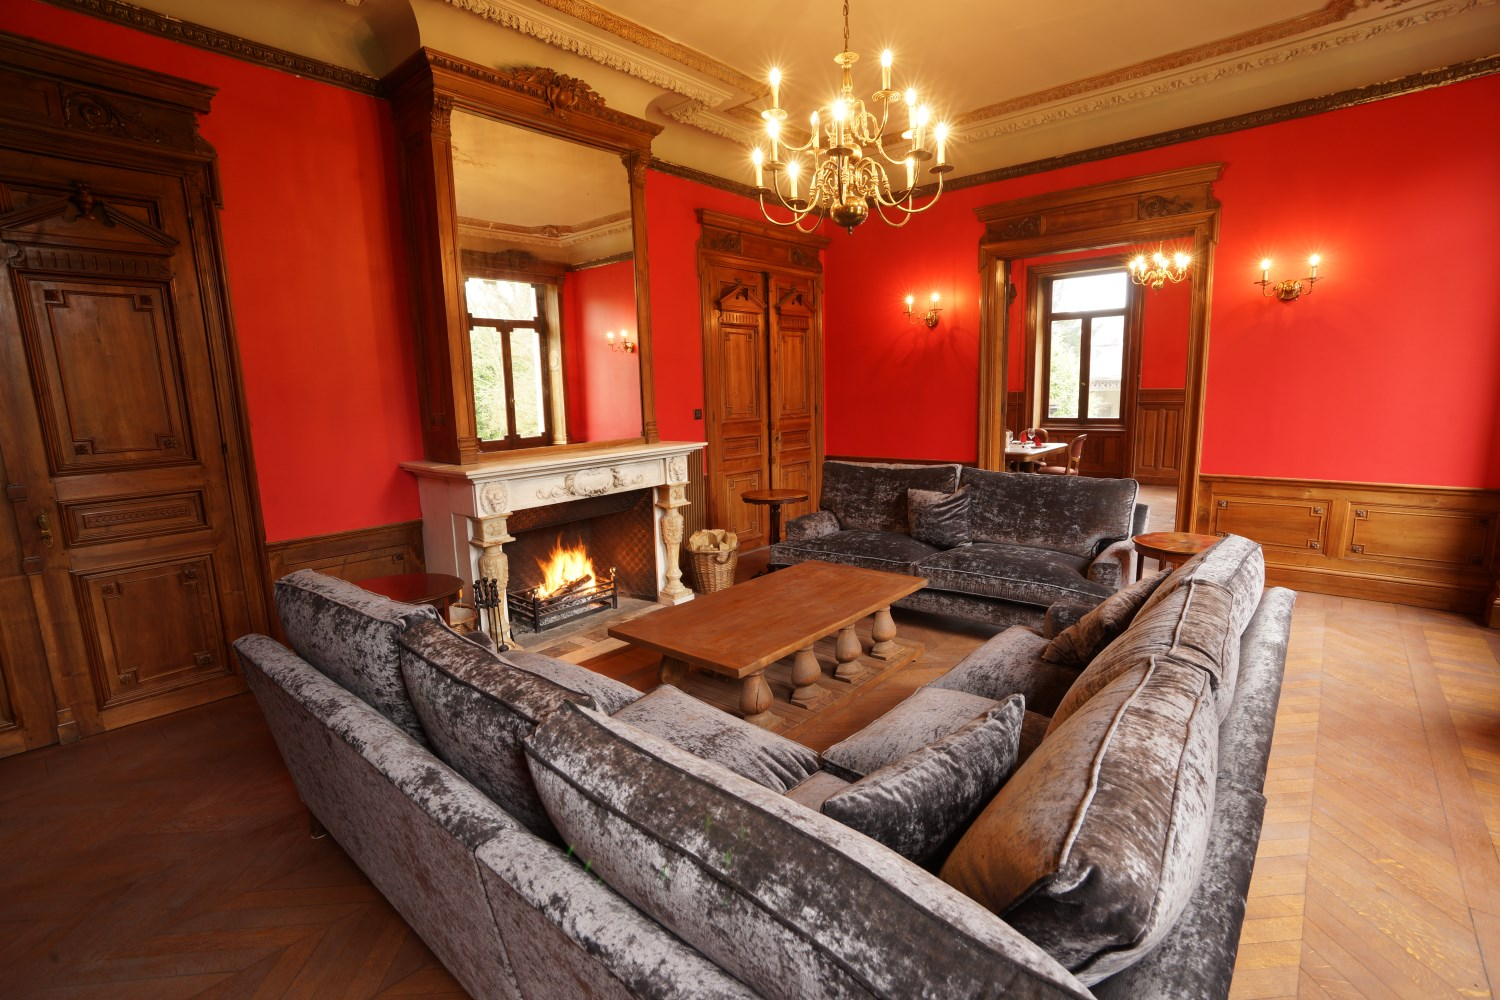 Red sitting room at Chateau d'Hallines, Pas-de-Calais